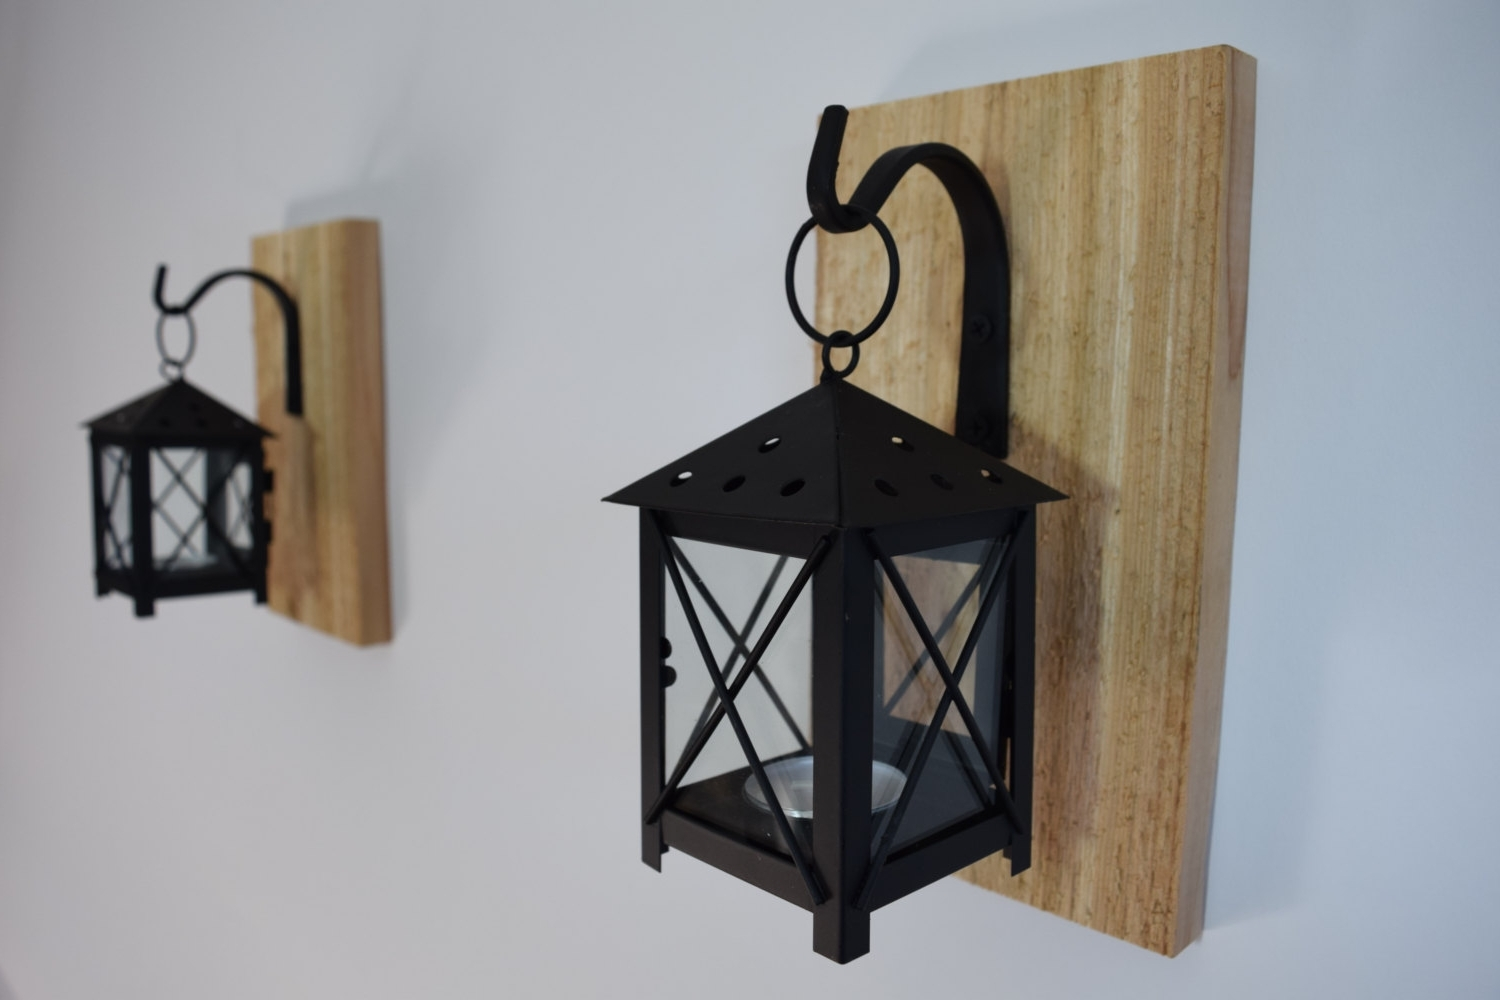 Etsy Outdoor Lanterns Within 2019 17 Rustic Lantern Wall Sconce, Lantern Sconces Outdoor Wall Sconce (Gallery 7 of 20)